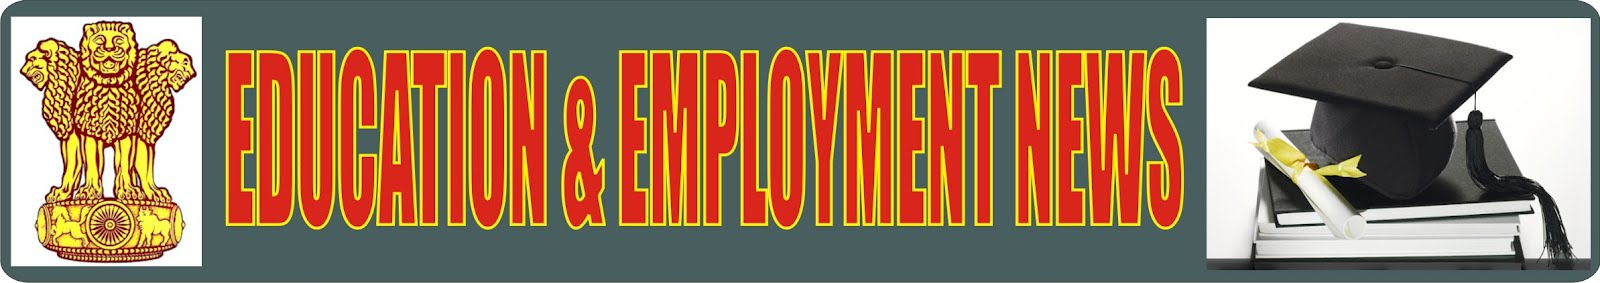 EDUCATION & EMPLOYMENT NEWS